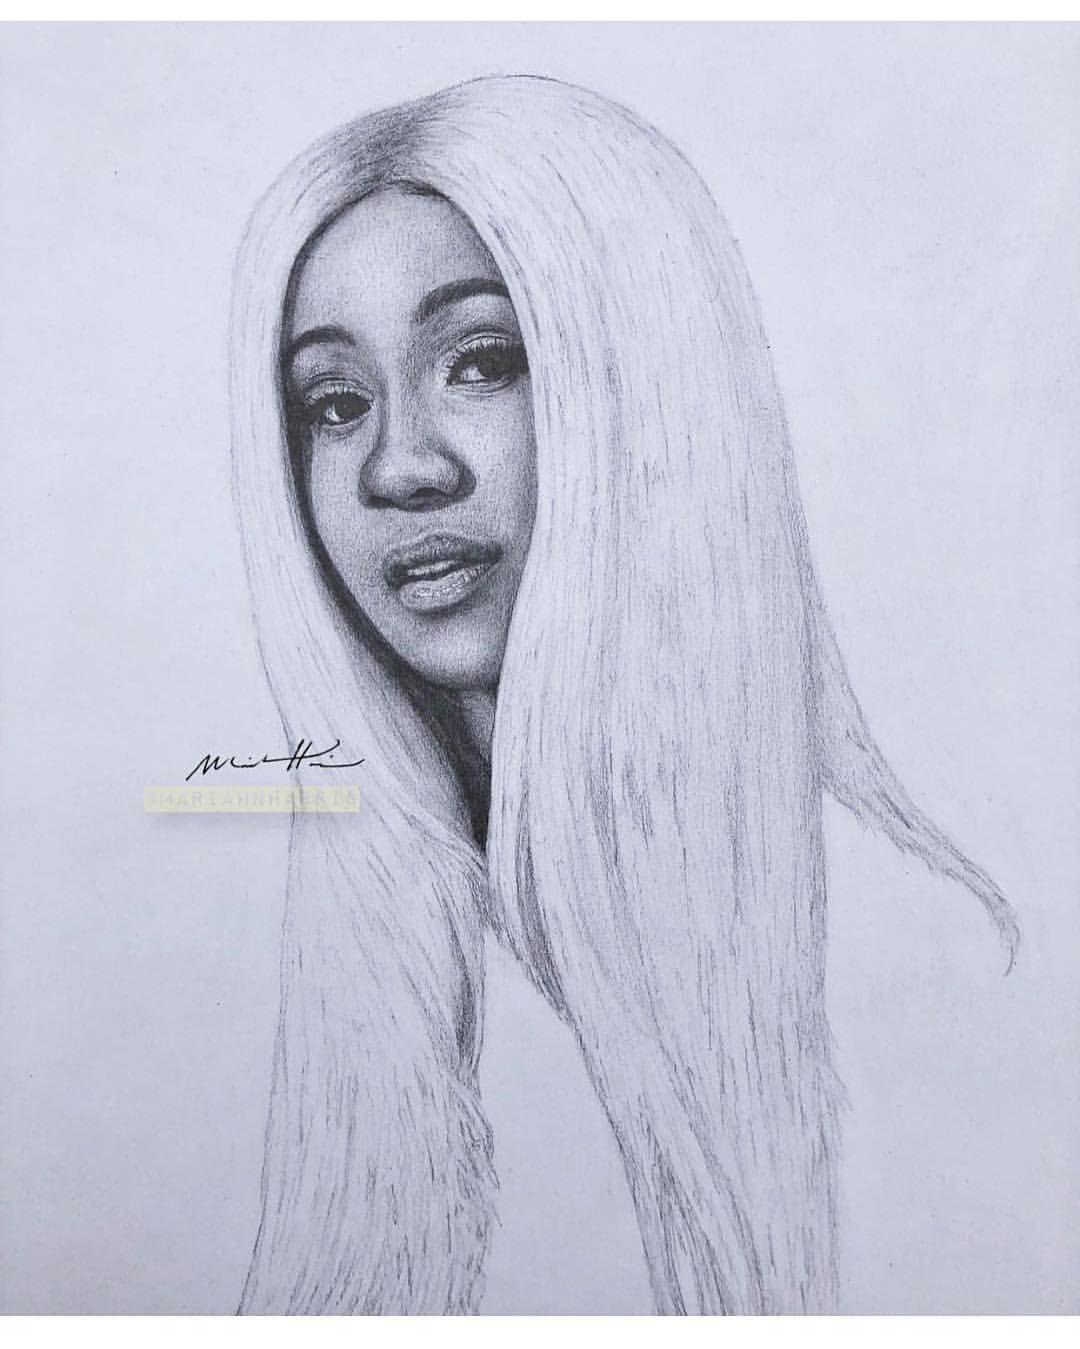 A collection of the top 40 cardi b cartoon wallpapers and backgrounds available for download for free. Cardi B Drawing Wallpapers Wallpaper Cave